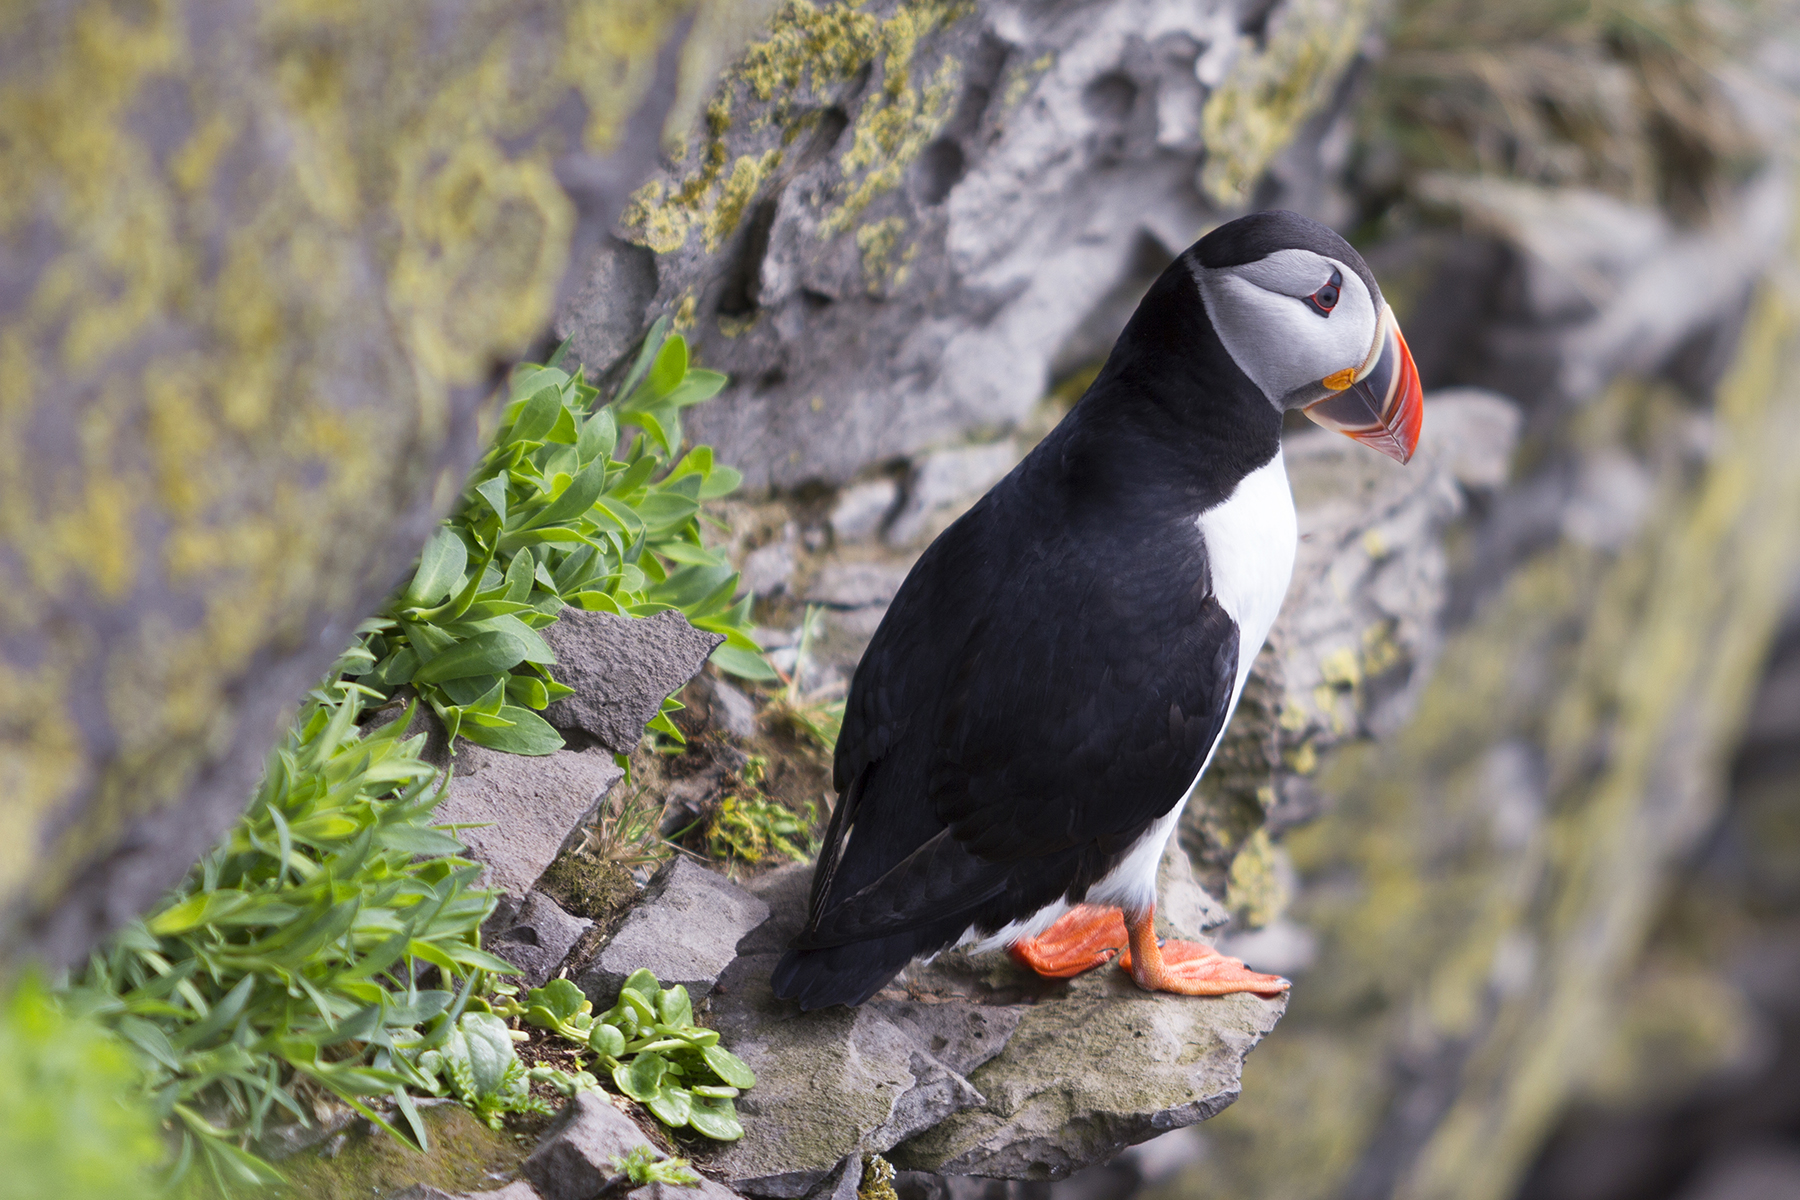 A puffin at Látrabjarg cliffs in Iceland